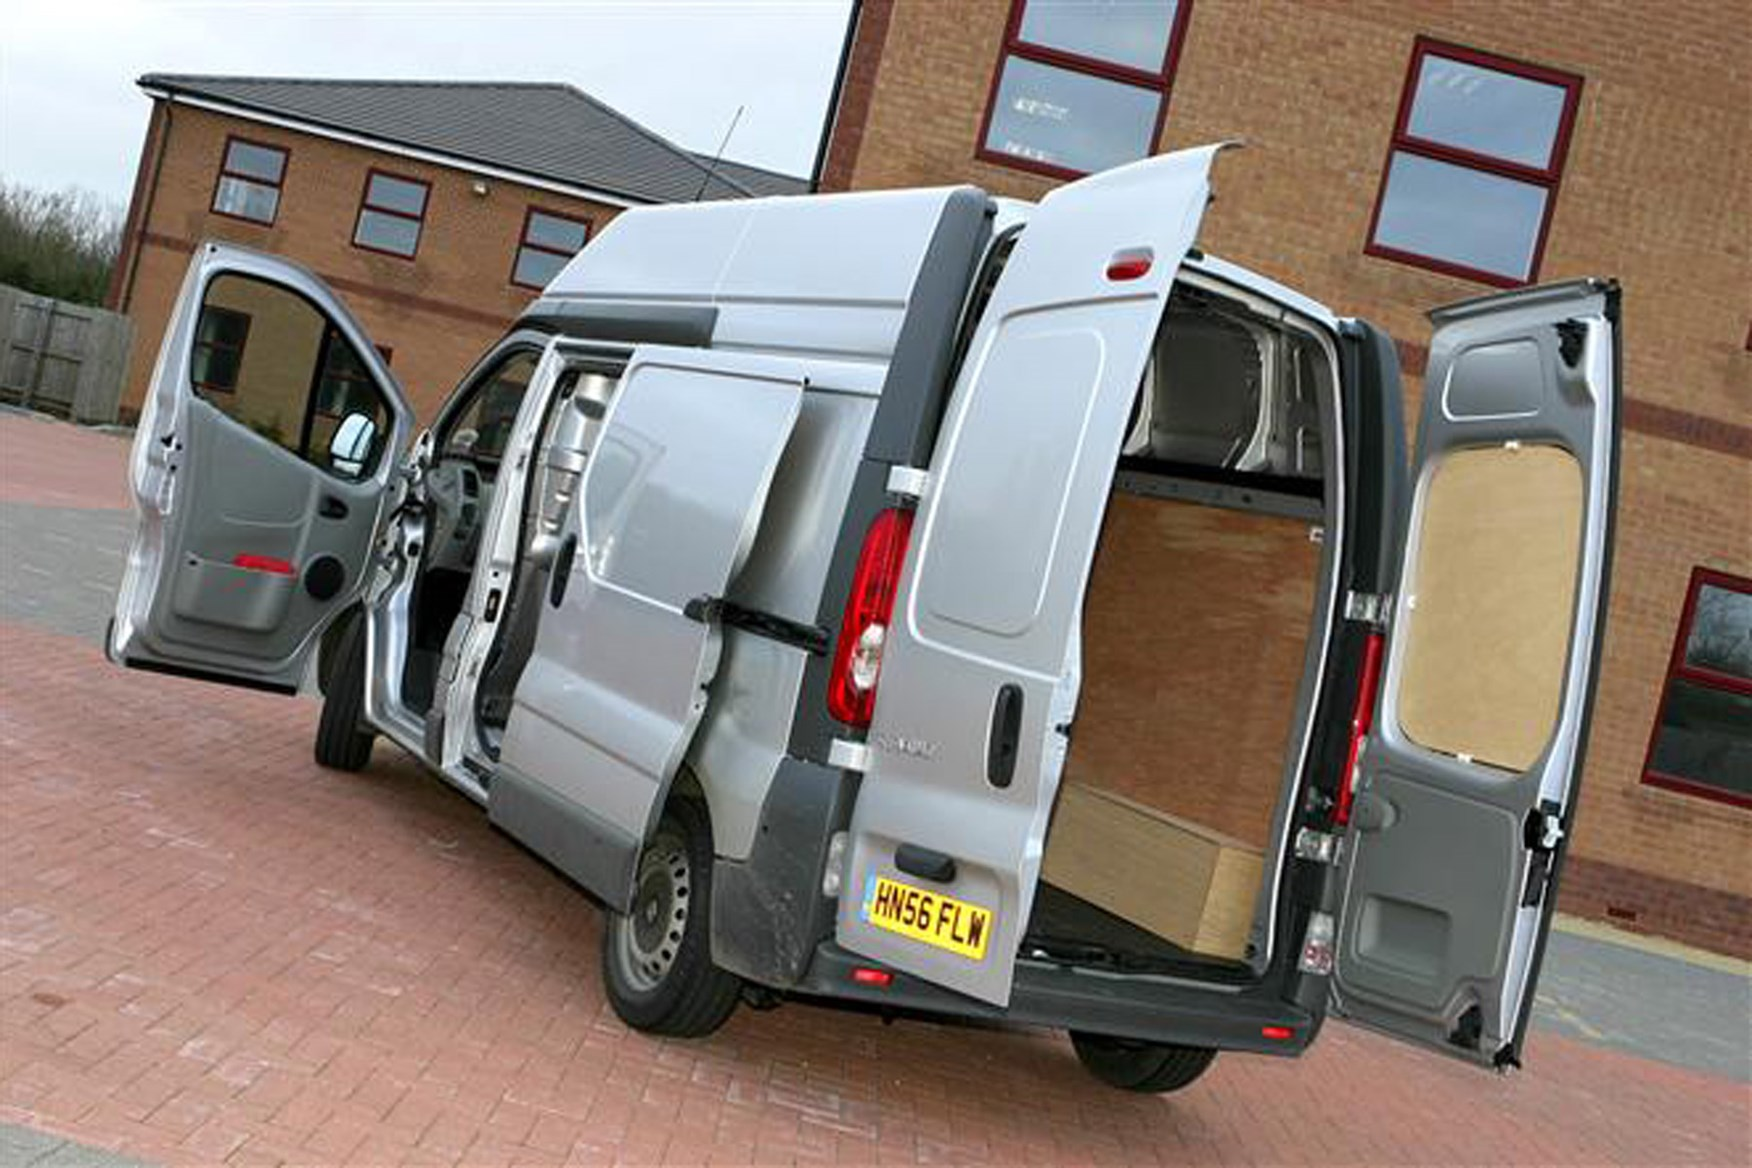 Renault Trafic 2001-2014 review on Parkers Vans - load area